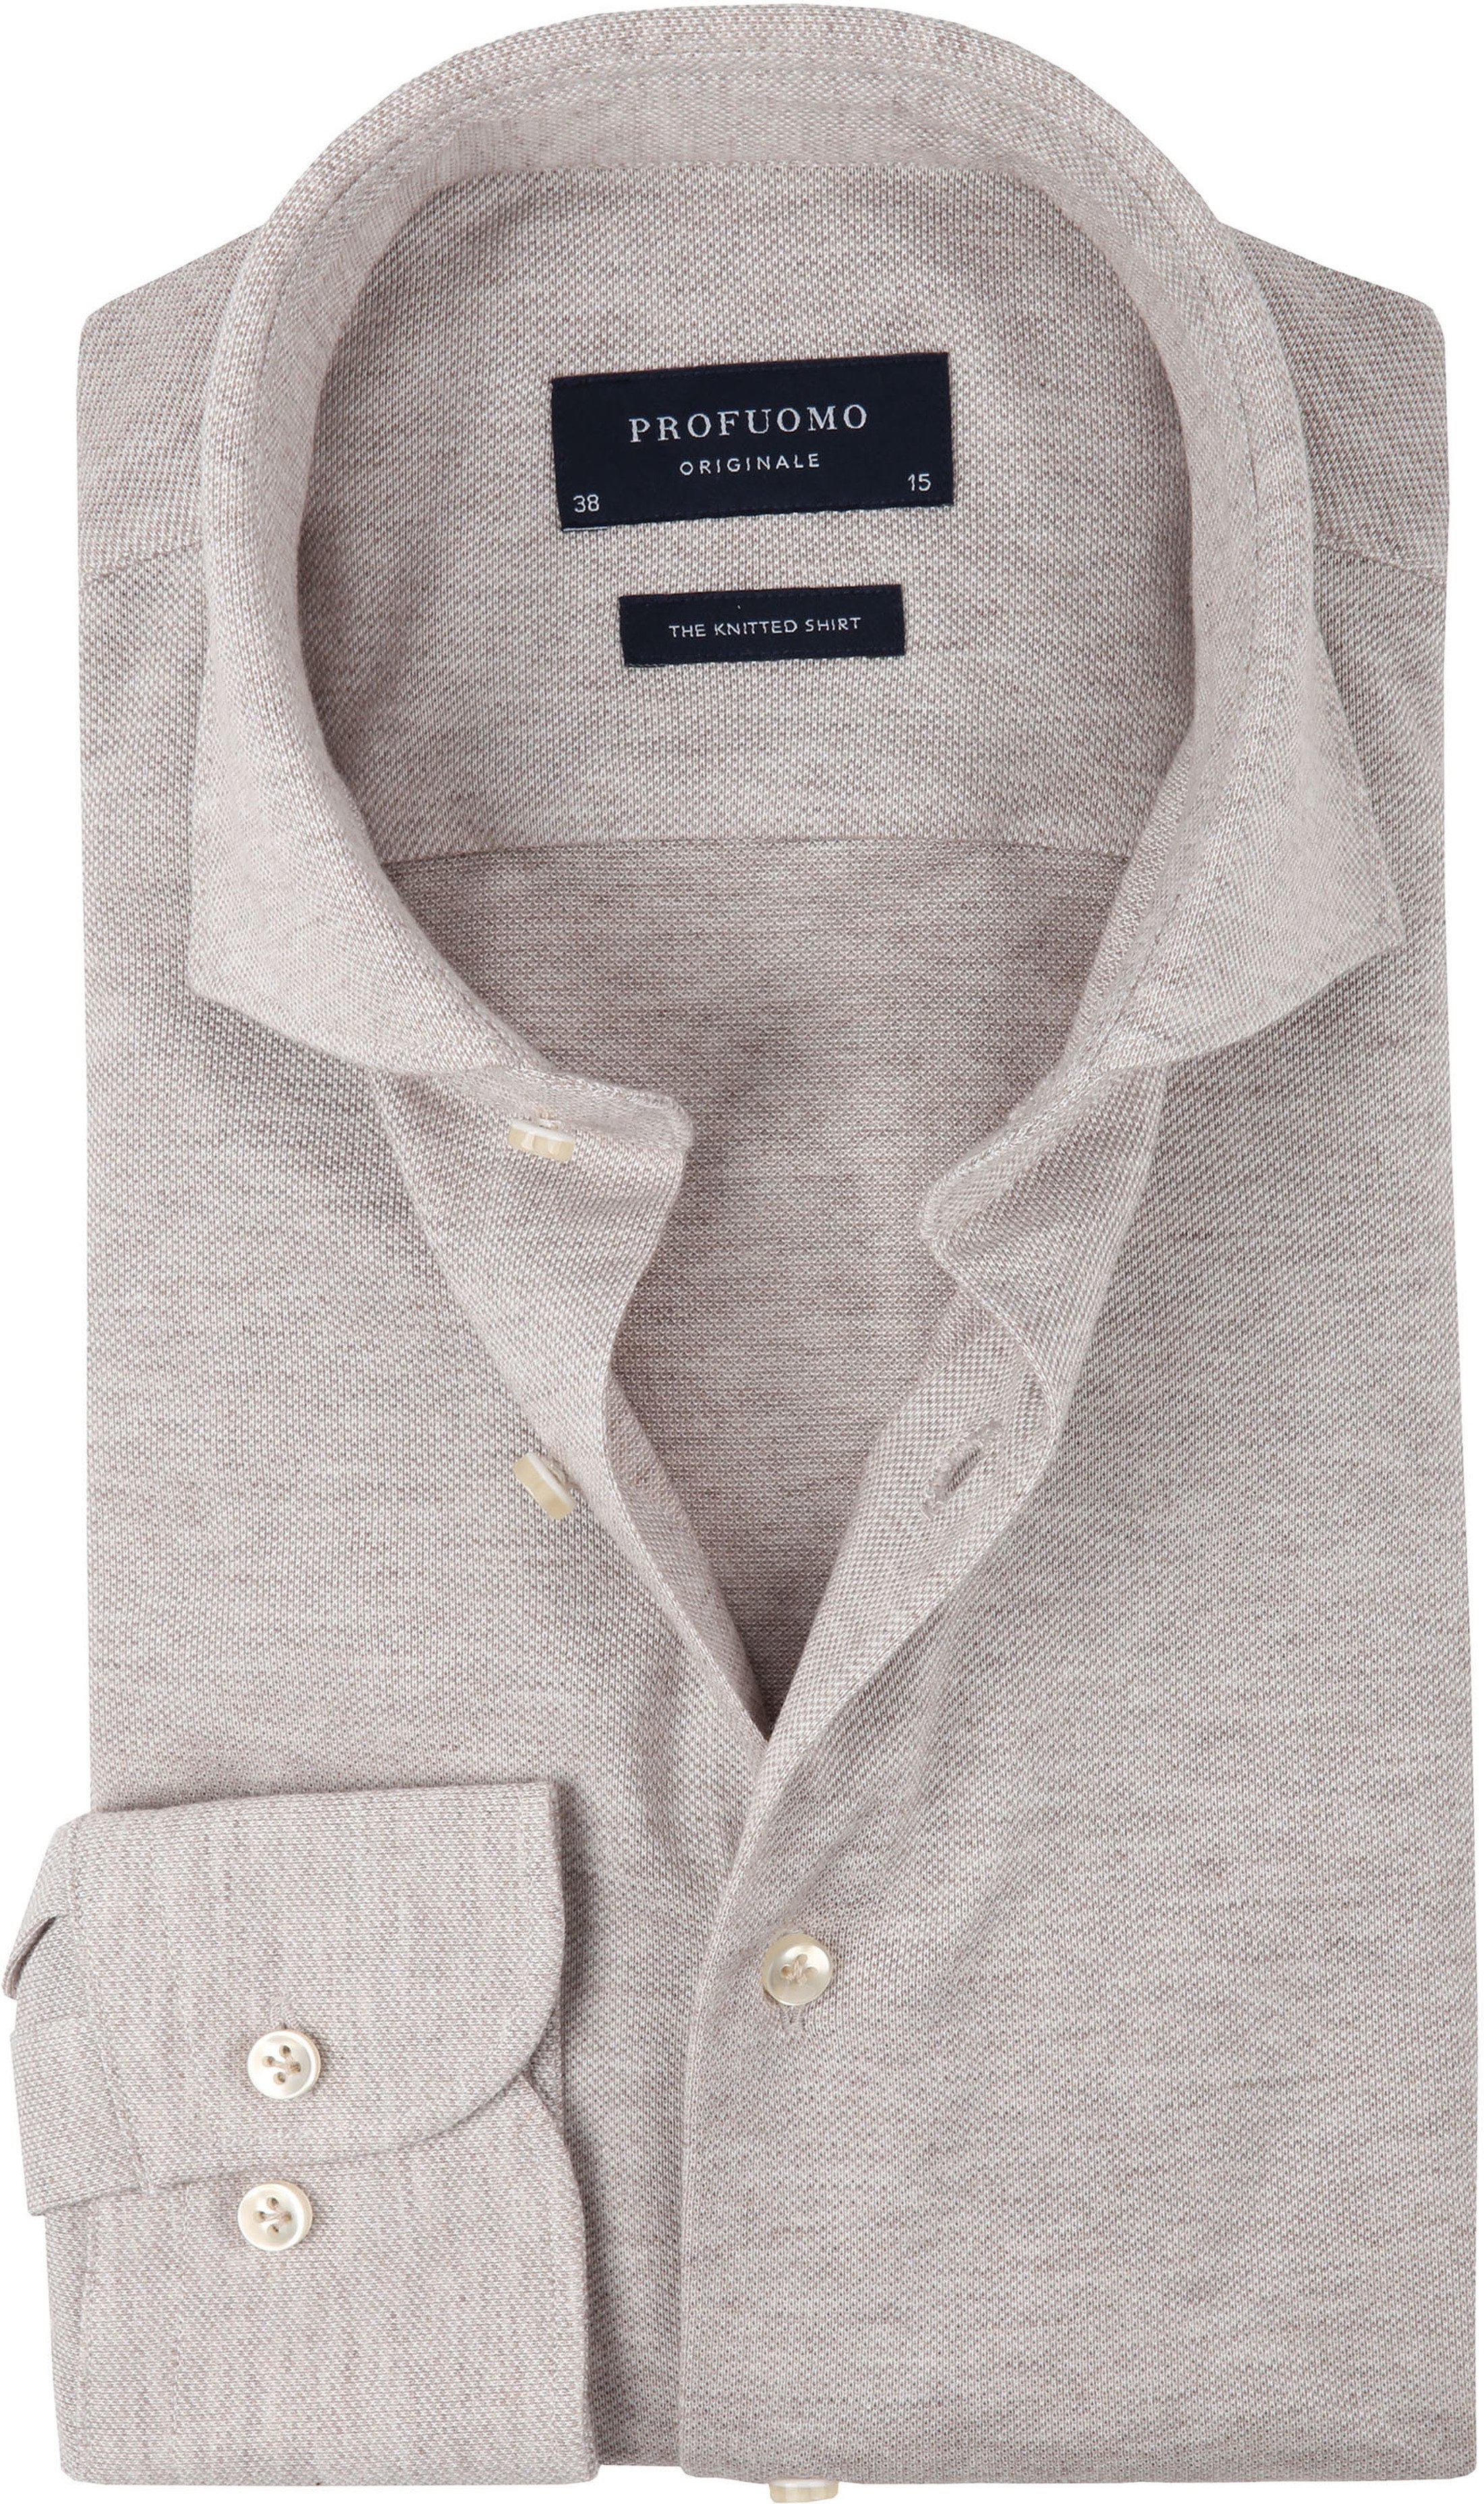 Profuomo Shirt Knitted Beige foto 0